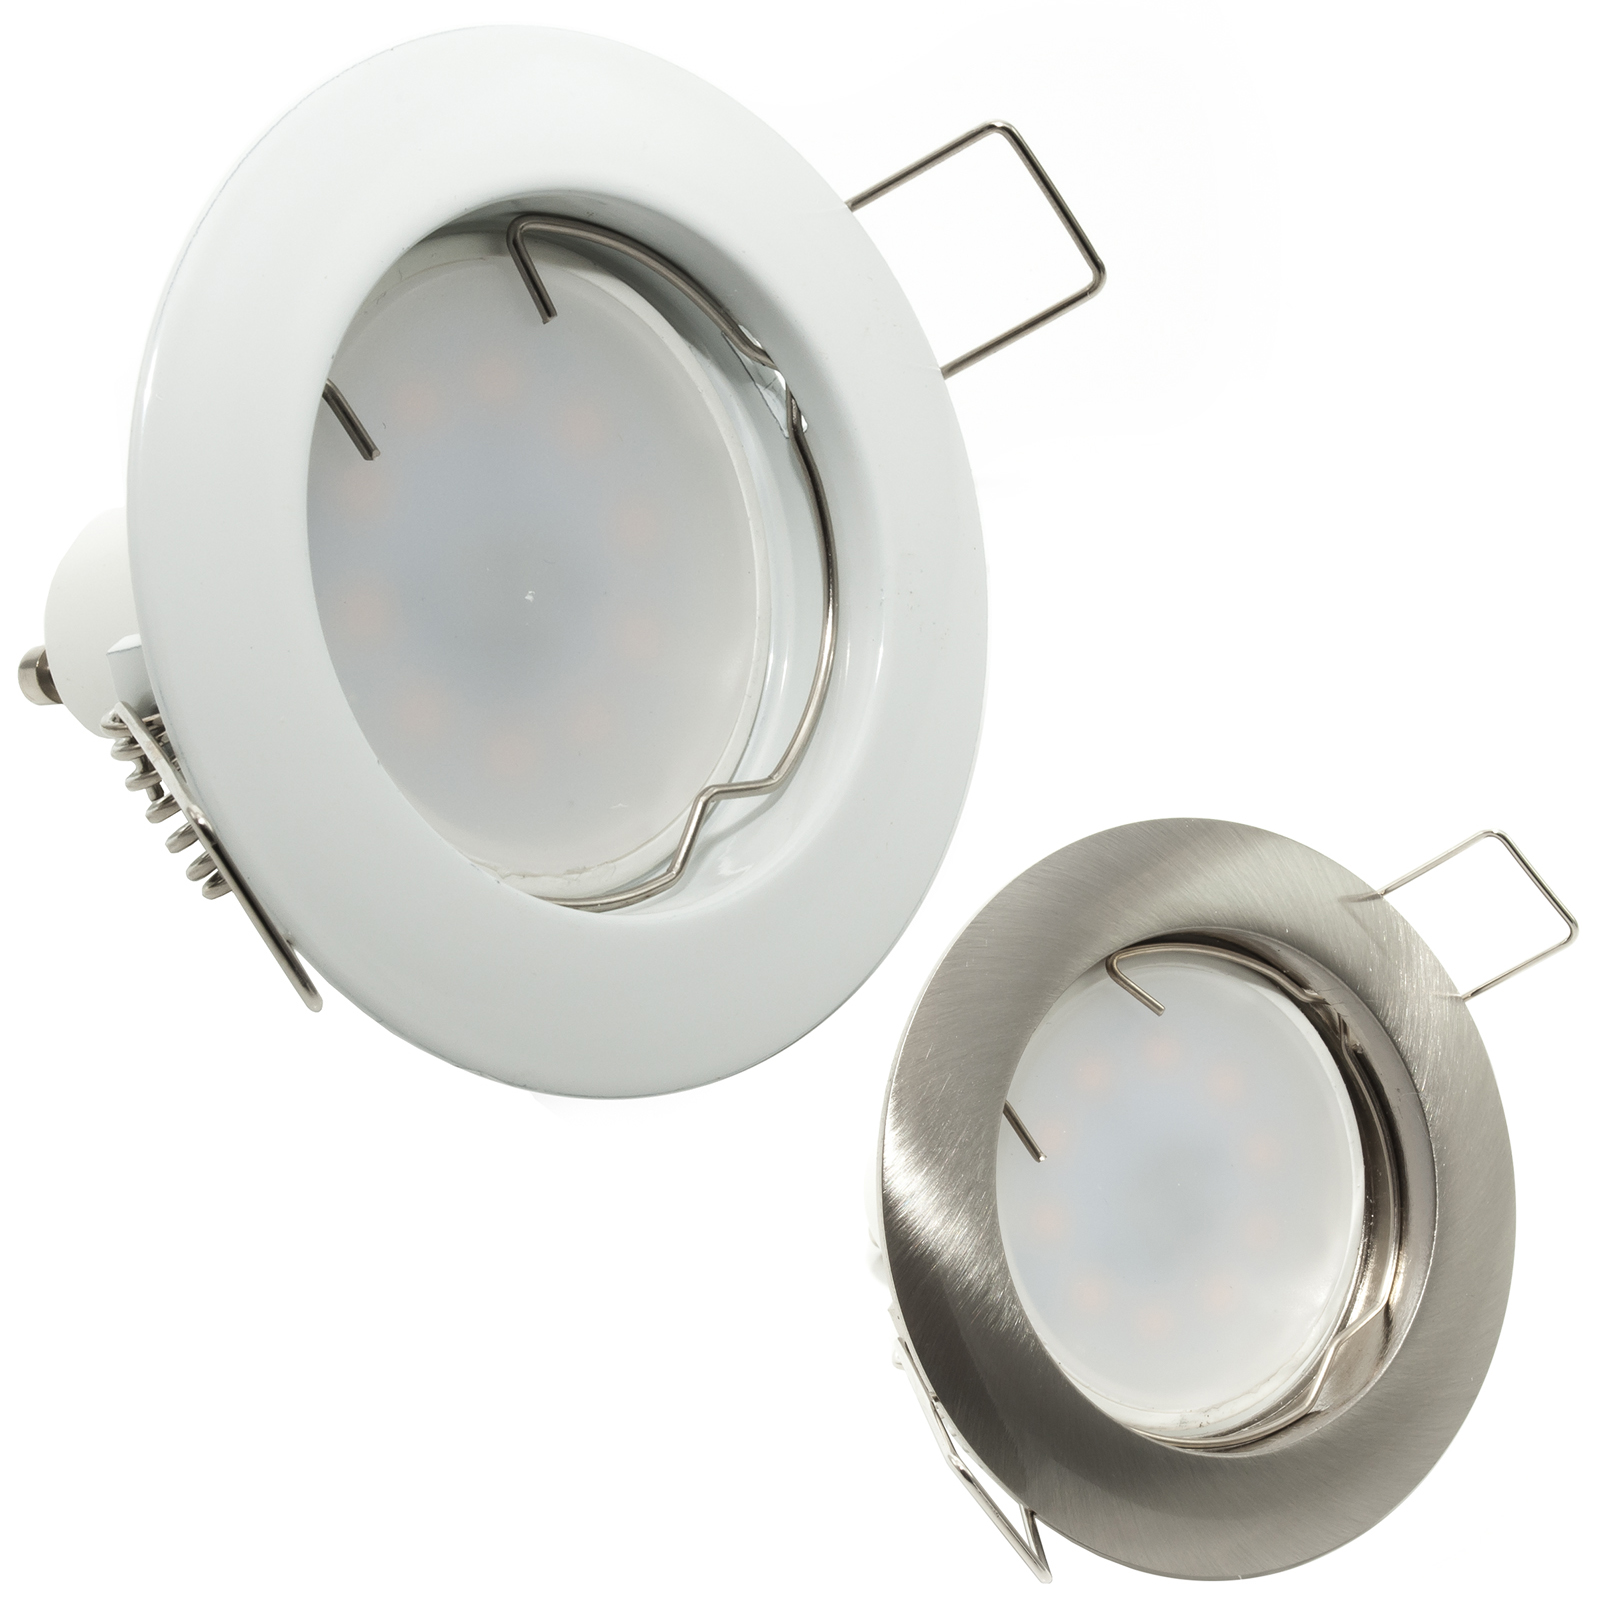 Spotlight LED lamp 8W diffused light recessed round lamp holder GU10 hole 6cm